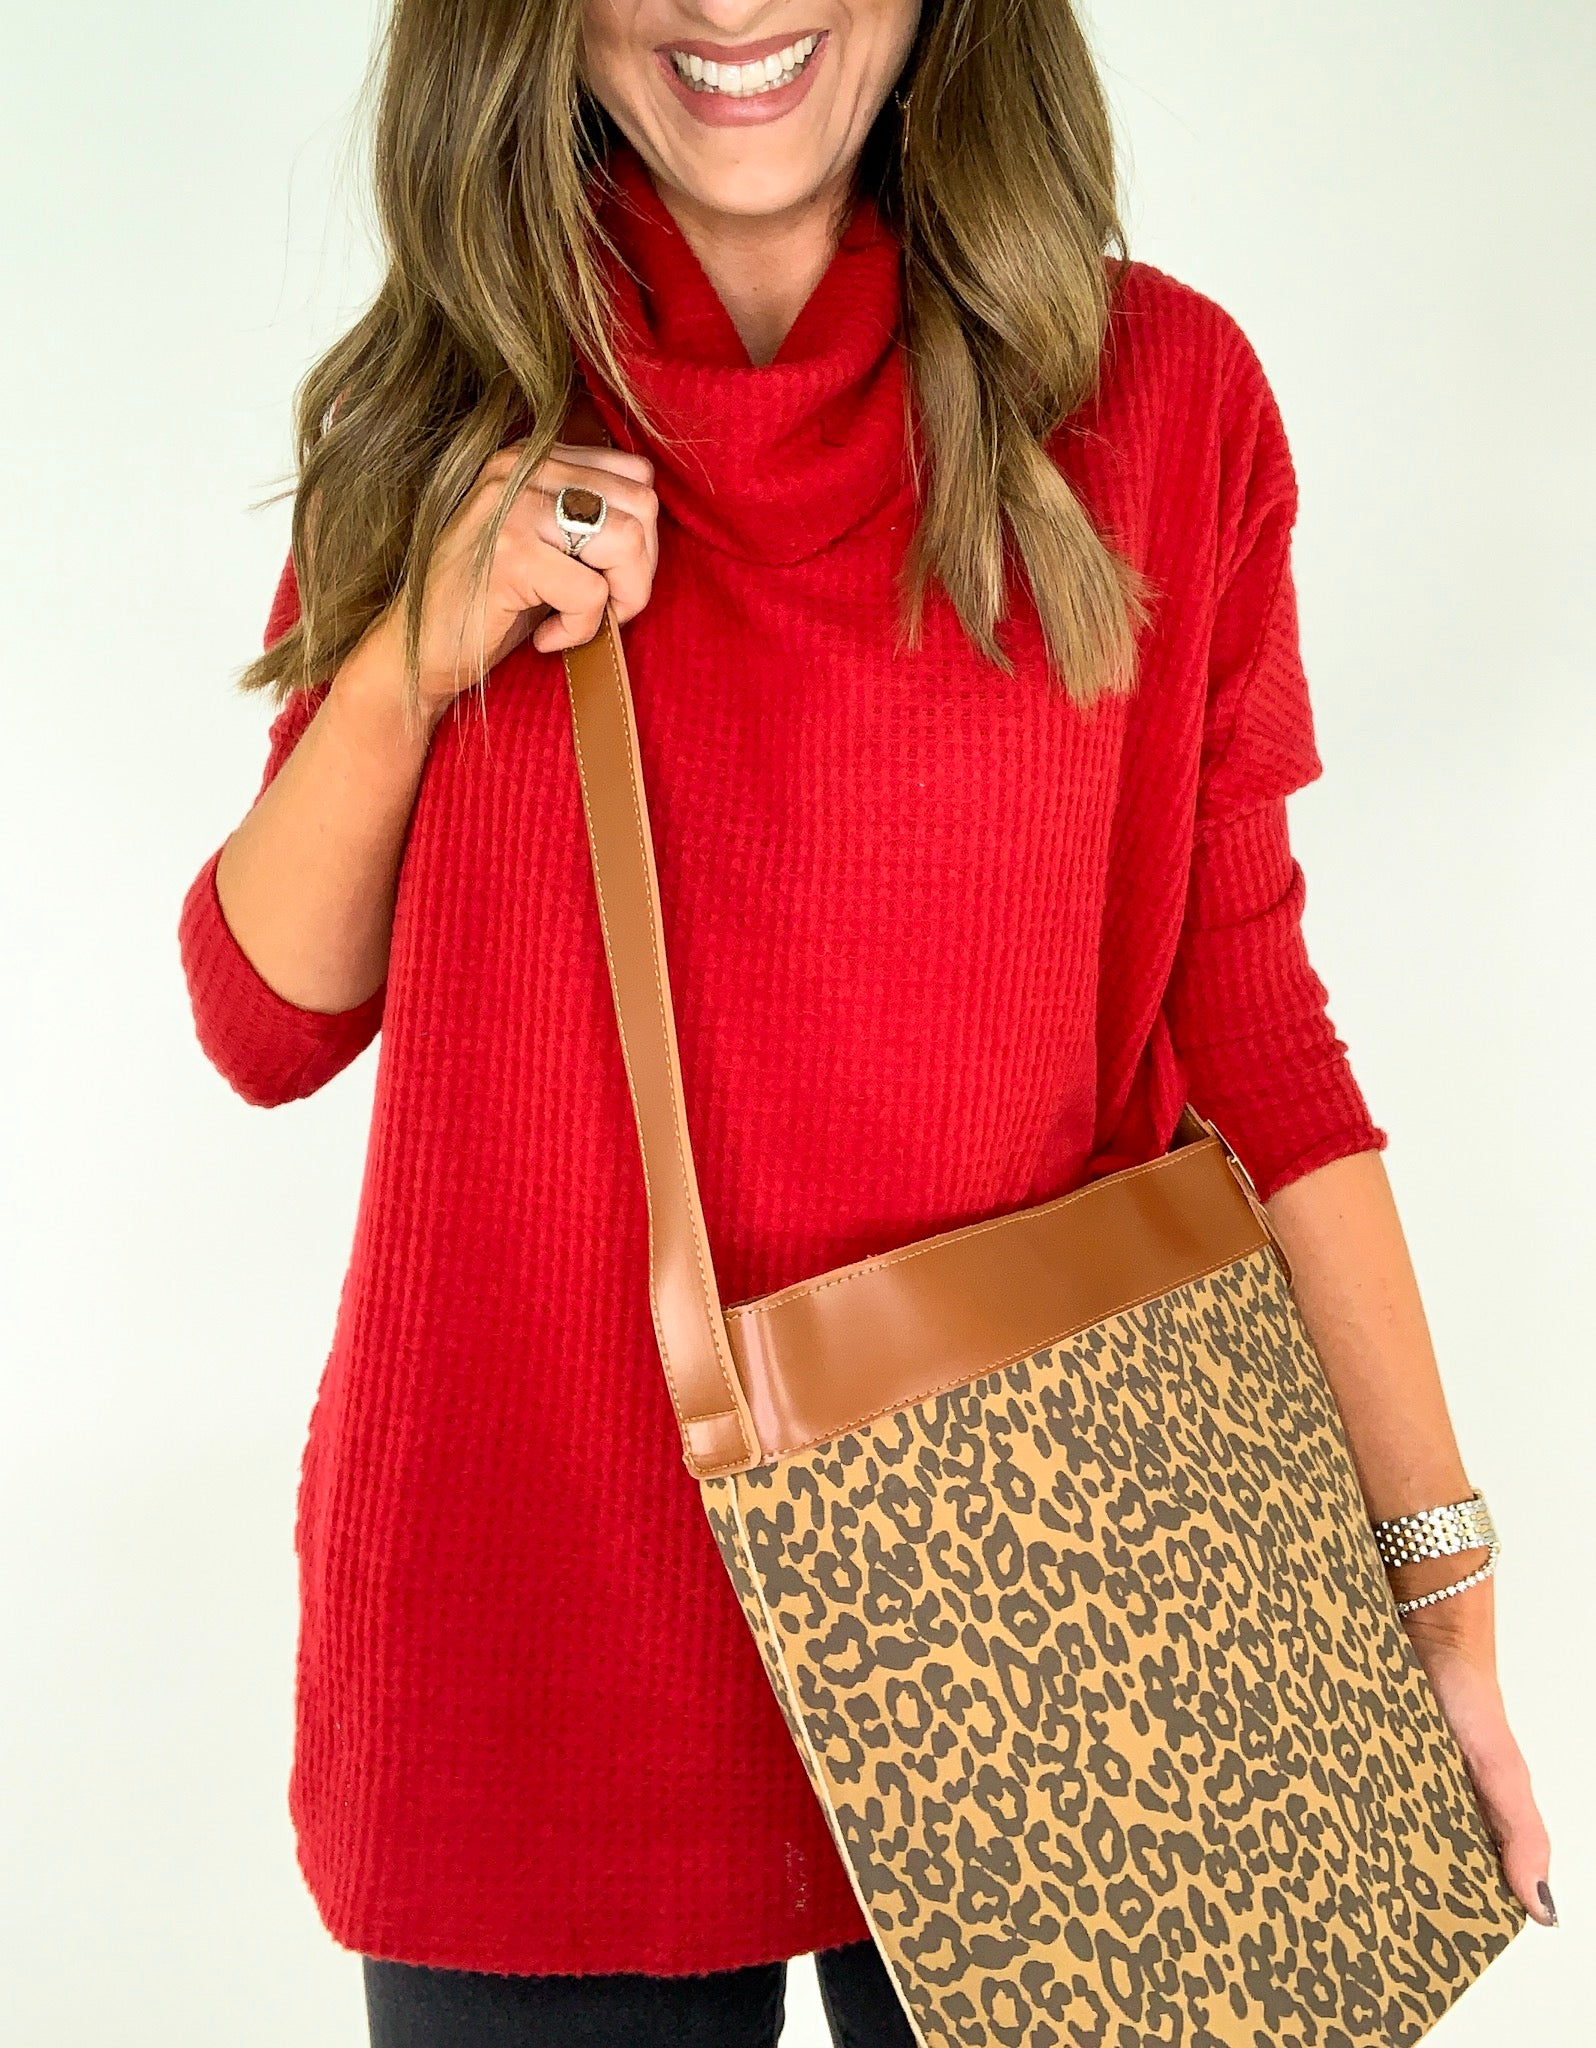 Leopard Crossbody Bag w/ Removable Pouch